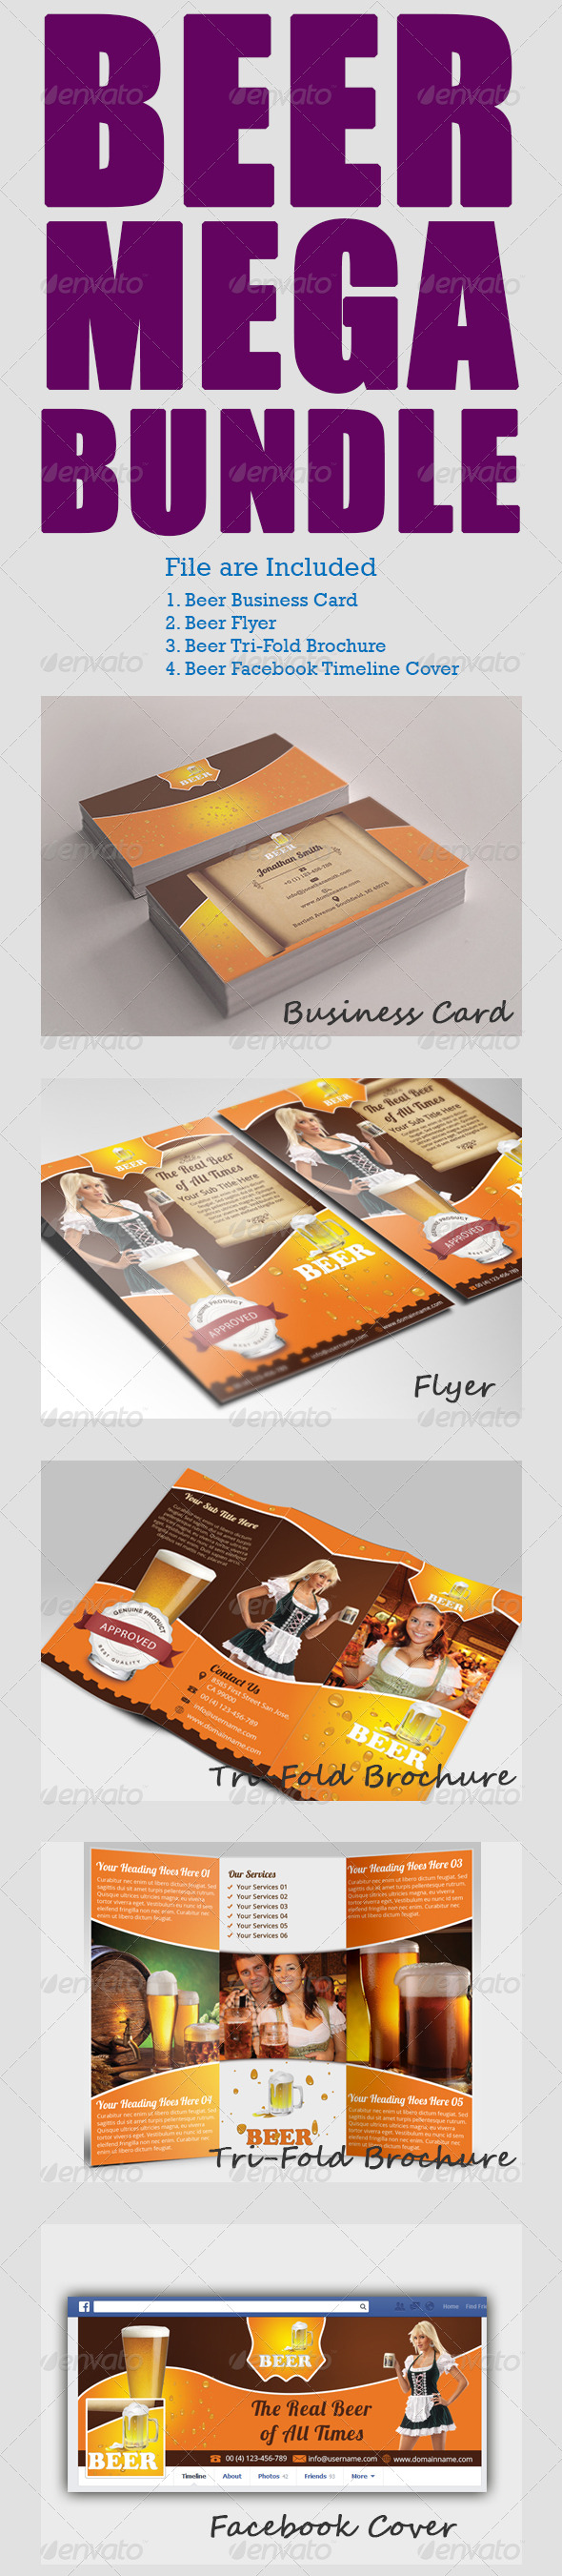 GraphicRiver Beer Mega Bundle 7024264